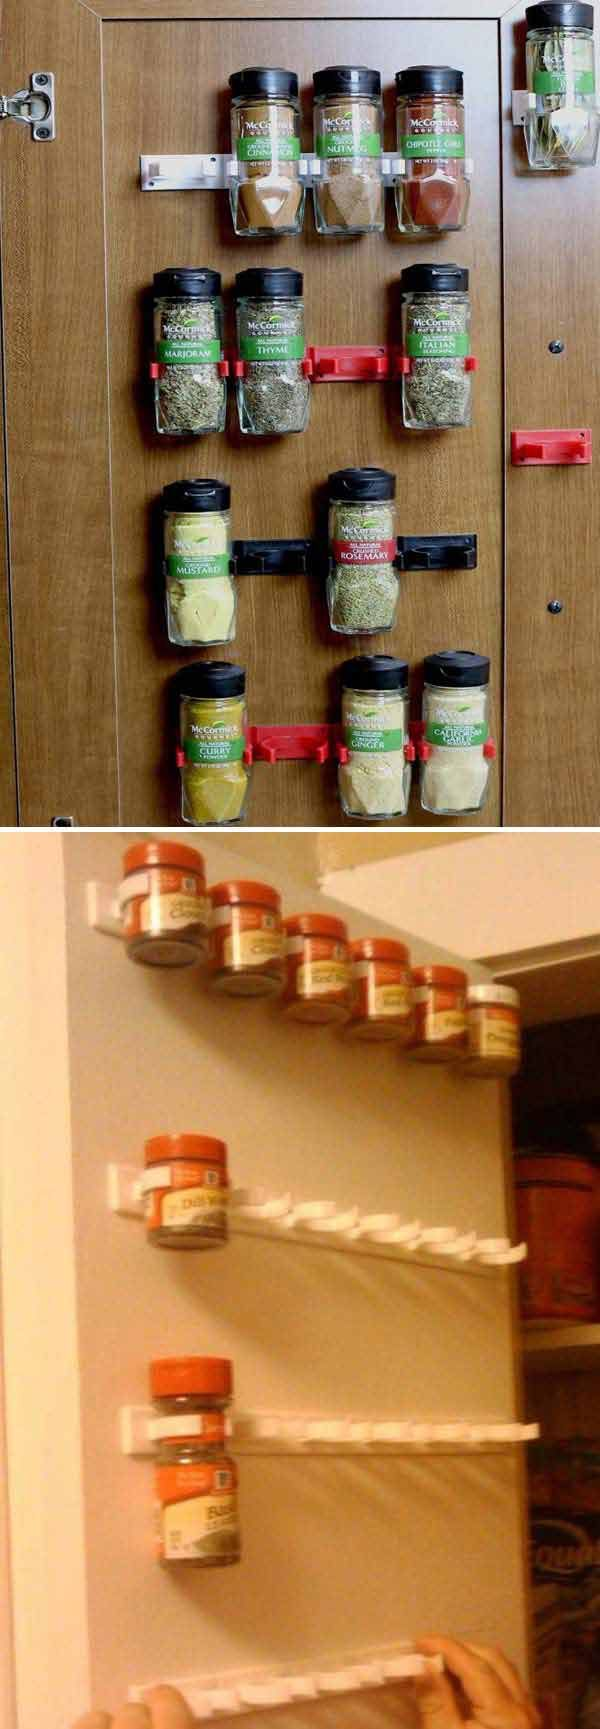 12 Super Epic Small Kitchen Hacks For Your Household ...